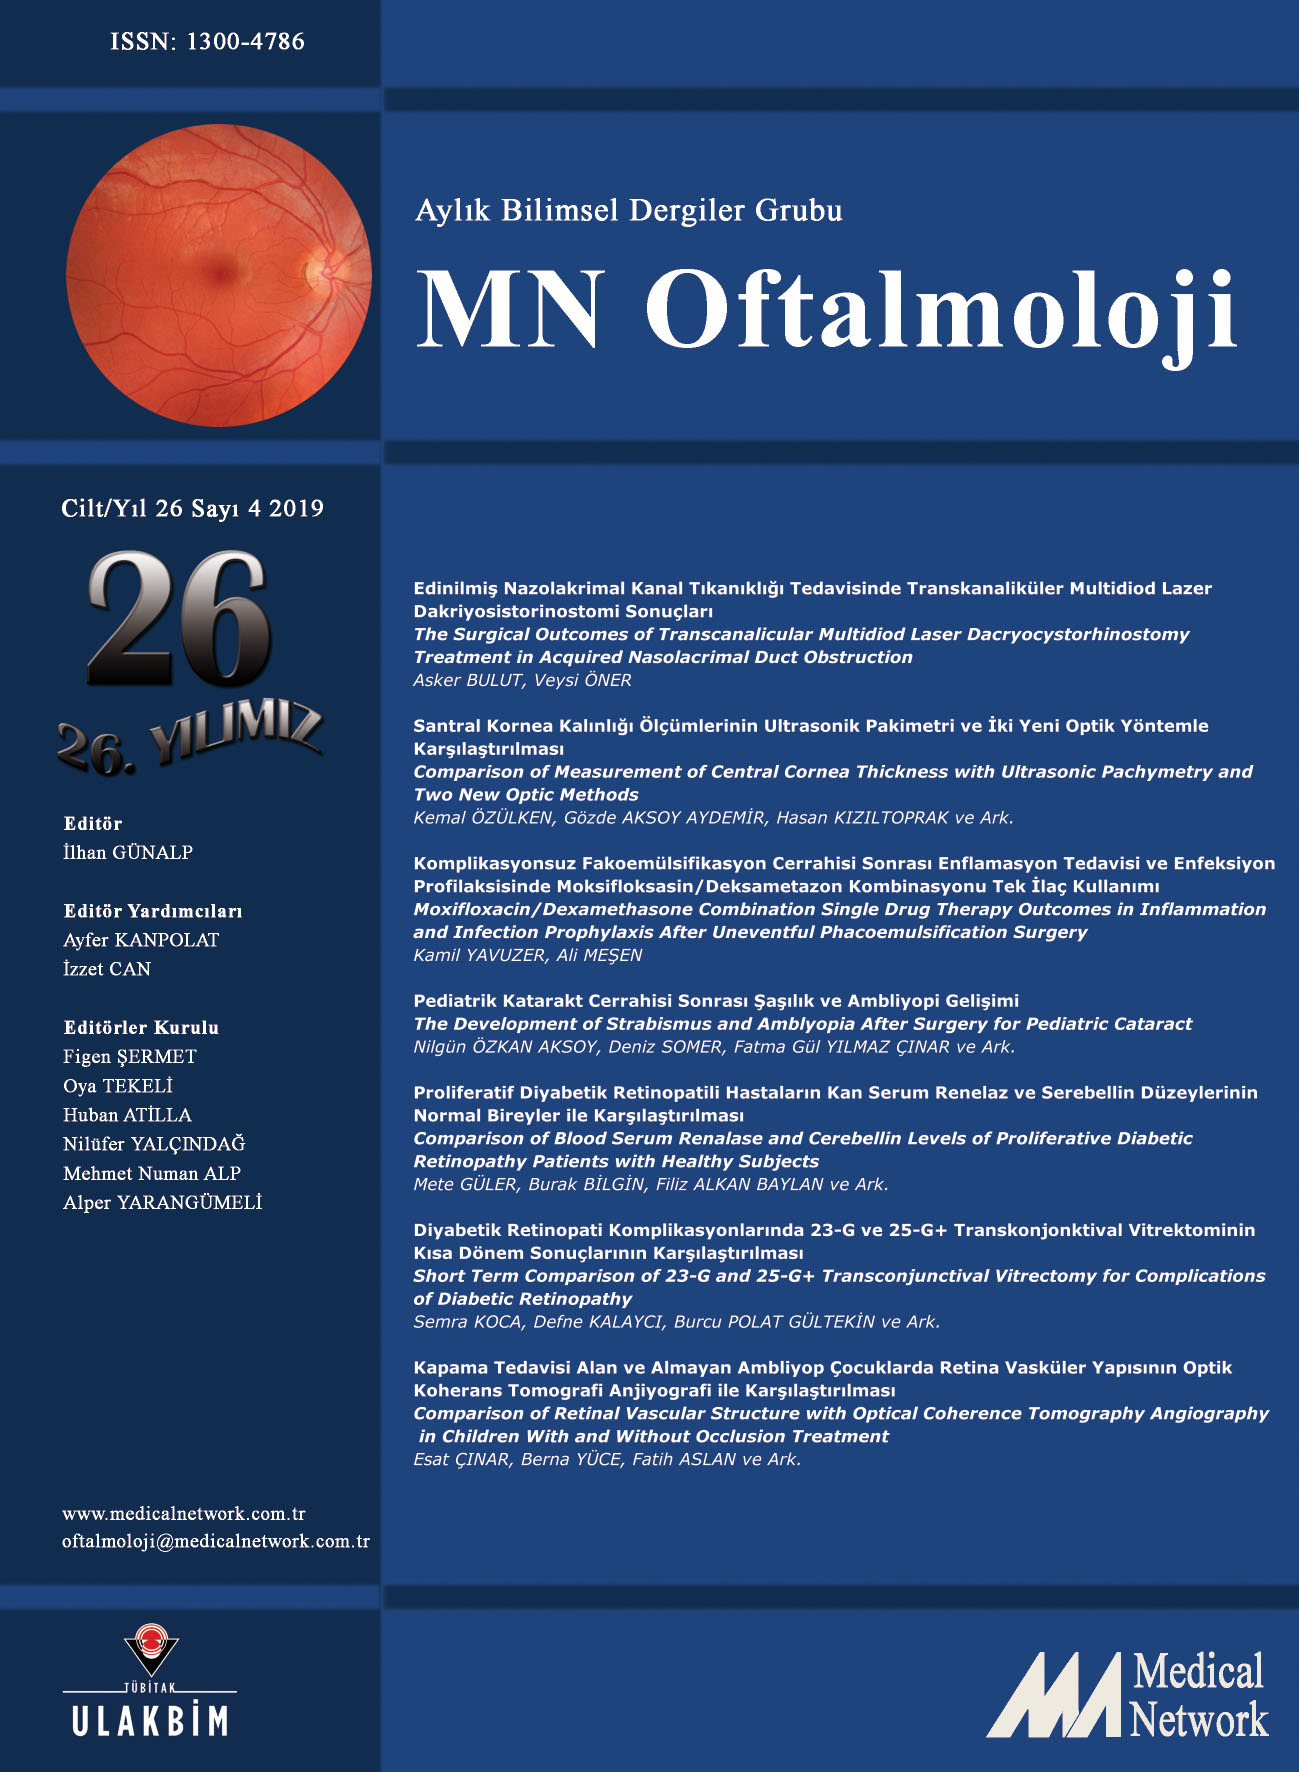 <p>MN Oftalmoloji Cilt: 26 Sayı: 4 2019 (MN Ophthalmology Volume: 26 No 4 2019)</p>